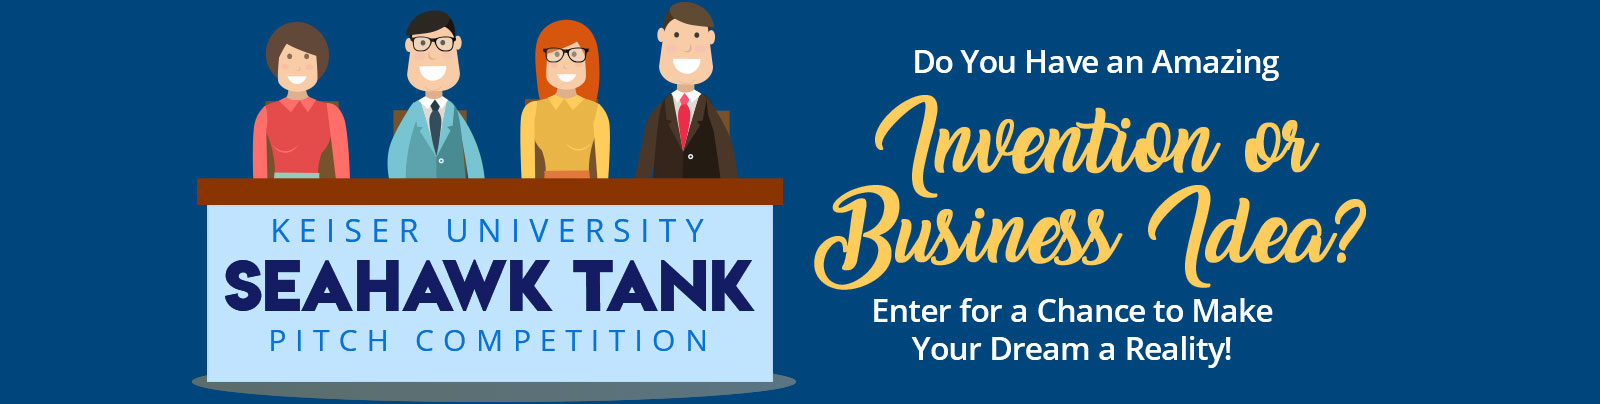 Enter the Seahawk Tank Pitch Competition!